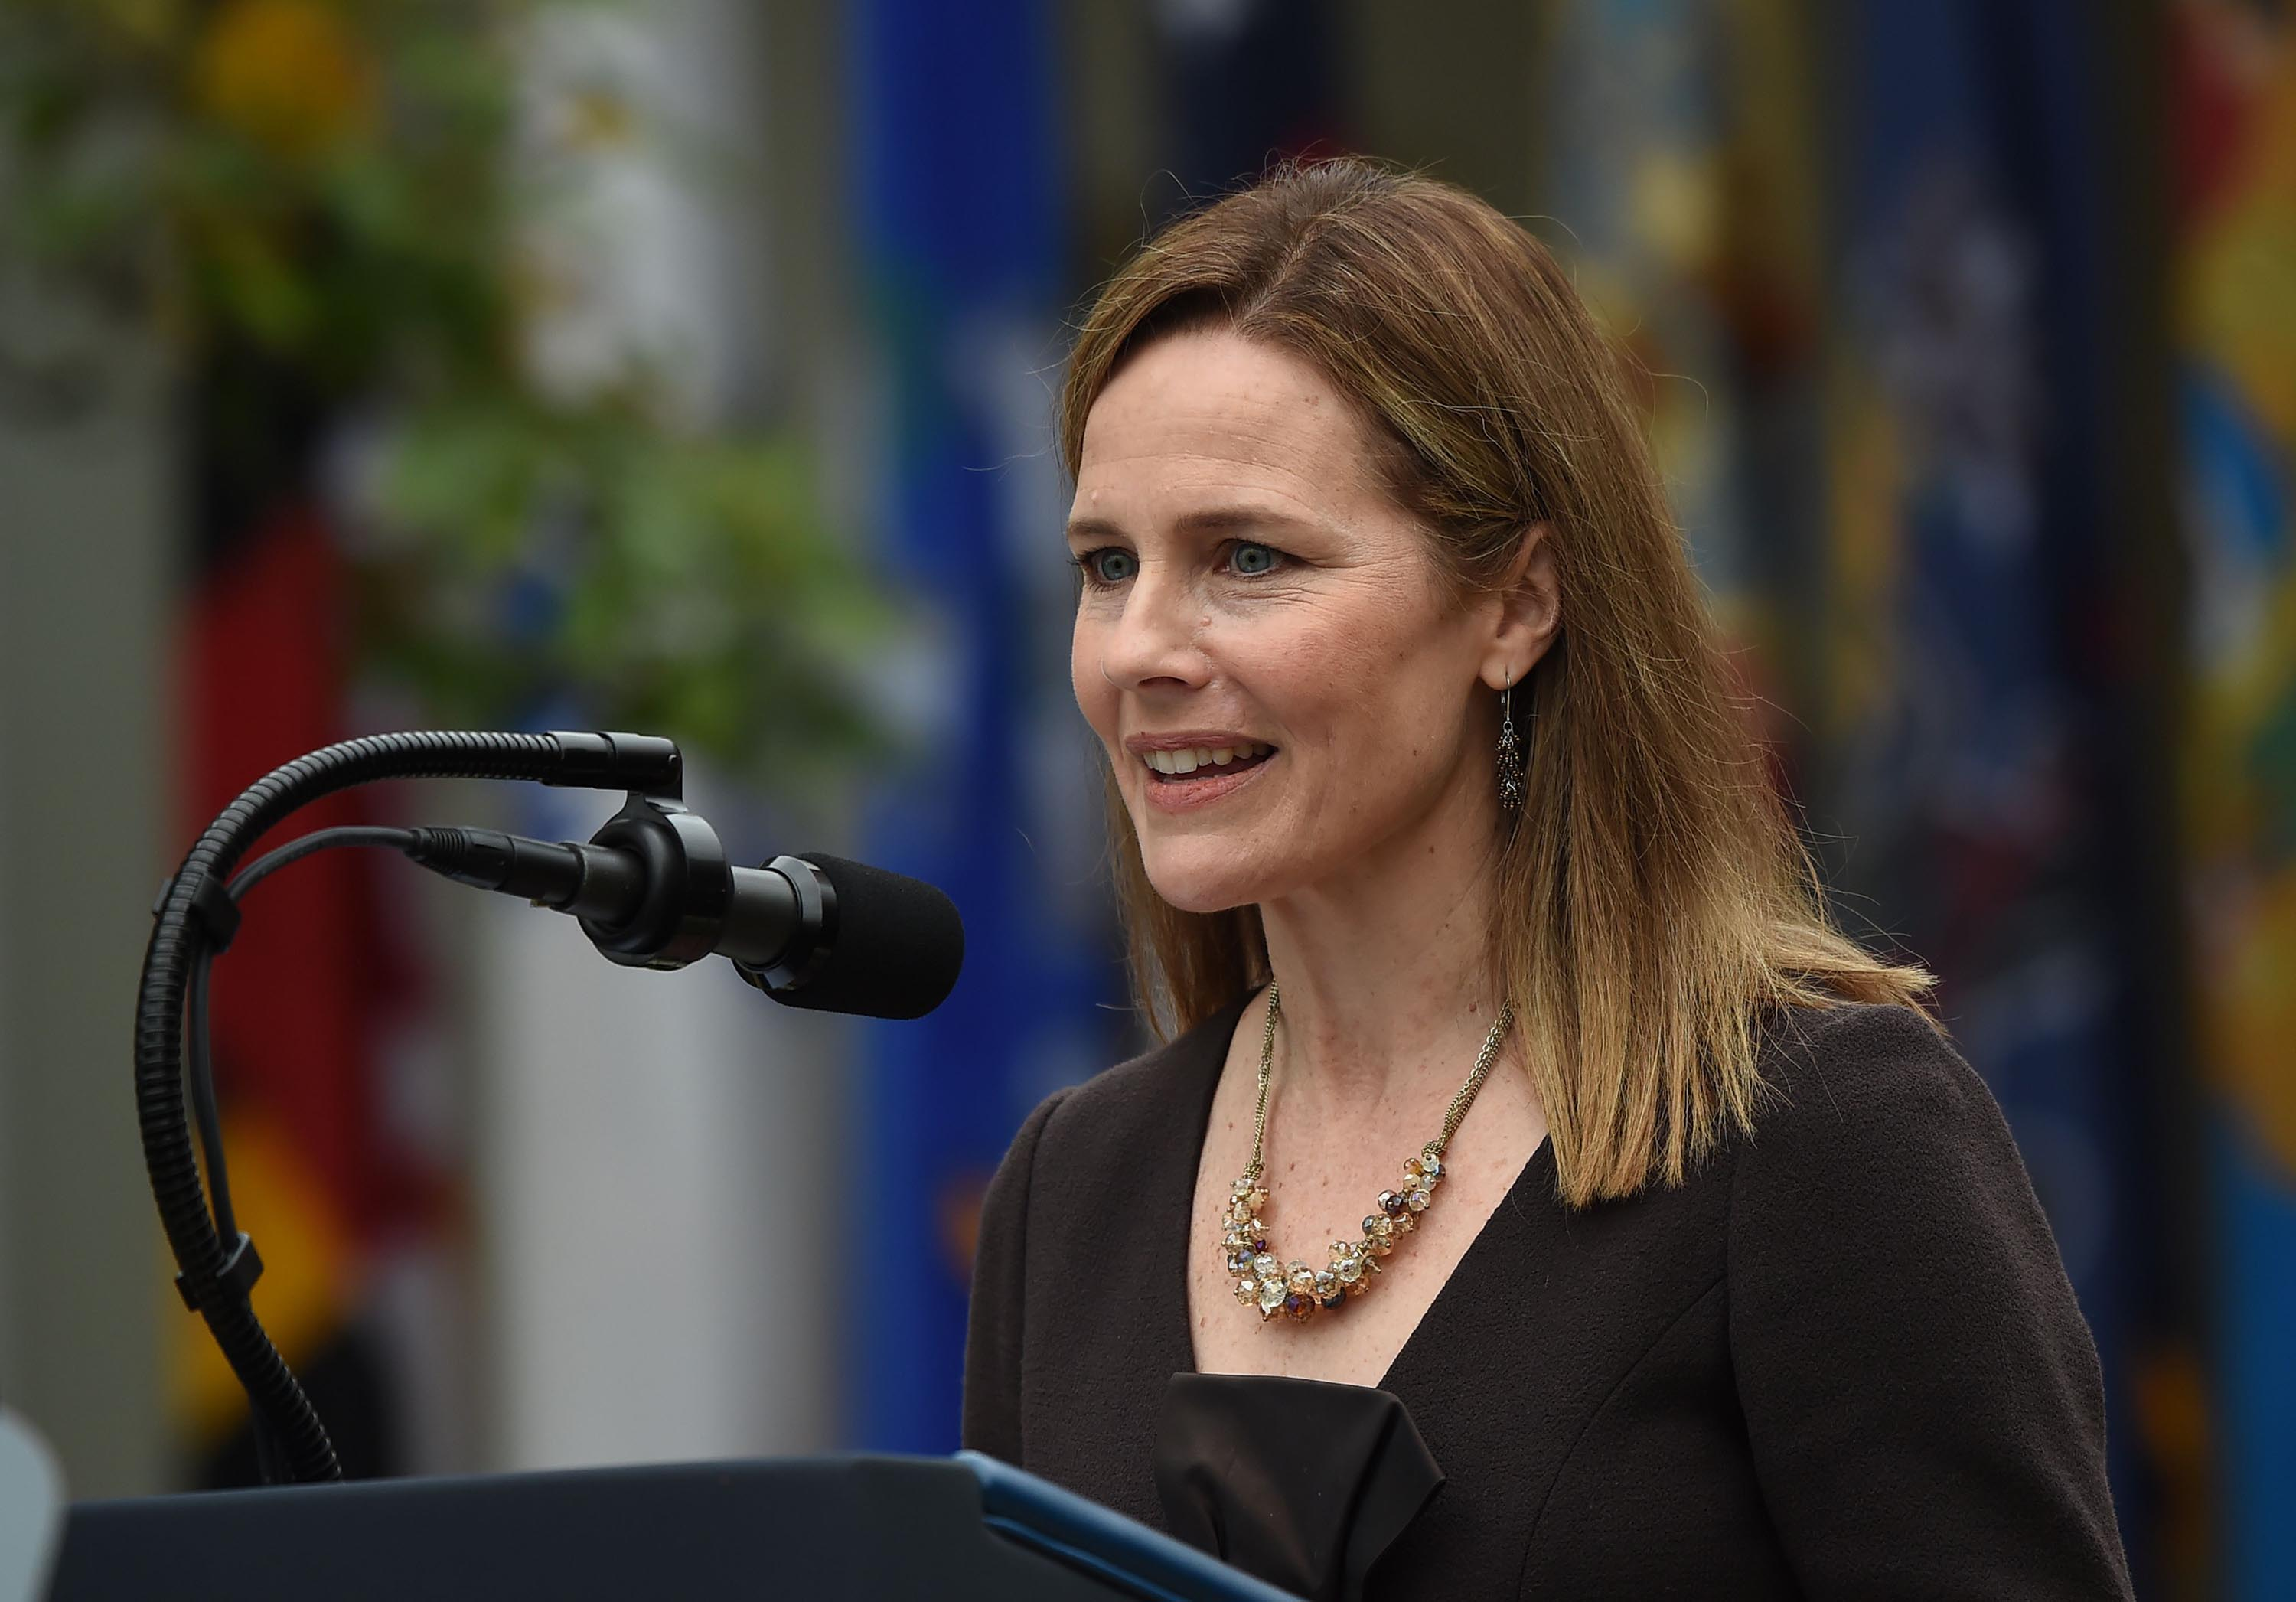 Judge Amy Coney Barrett speaks after being nominated to the US Supreme Court by President Donald Trump on September 26 in Washington, DC.